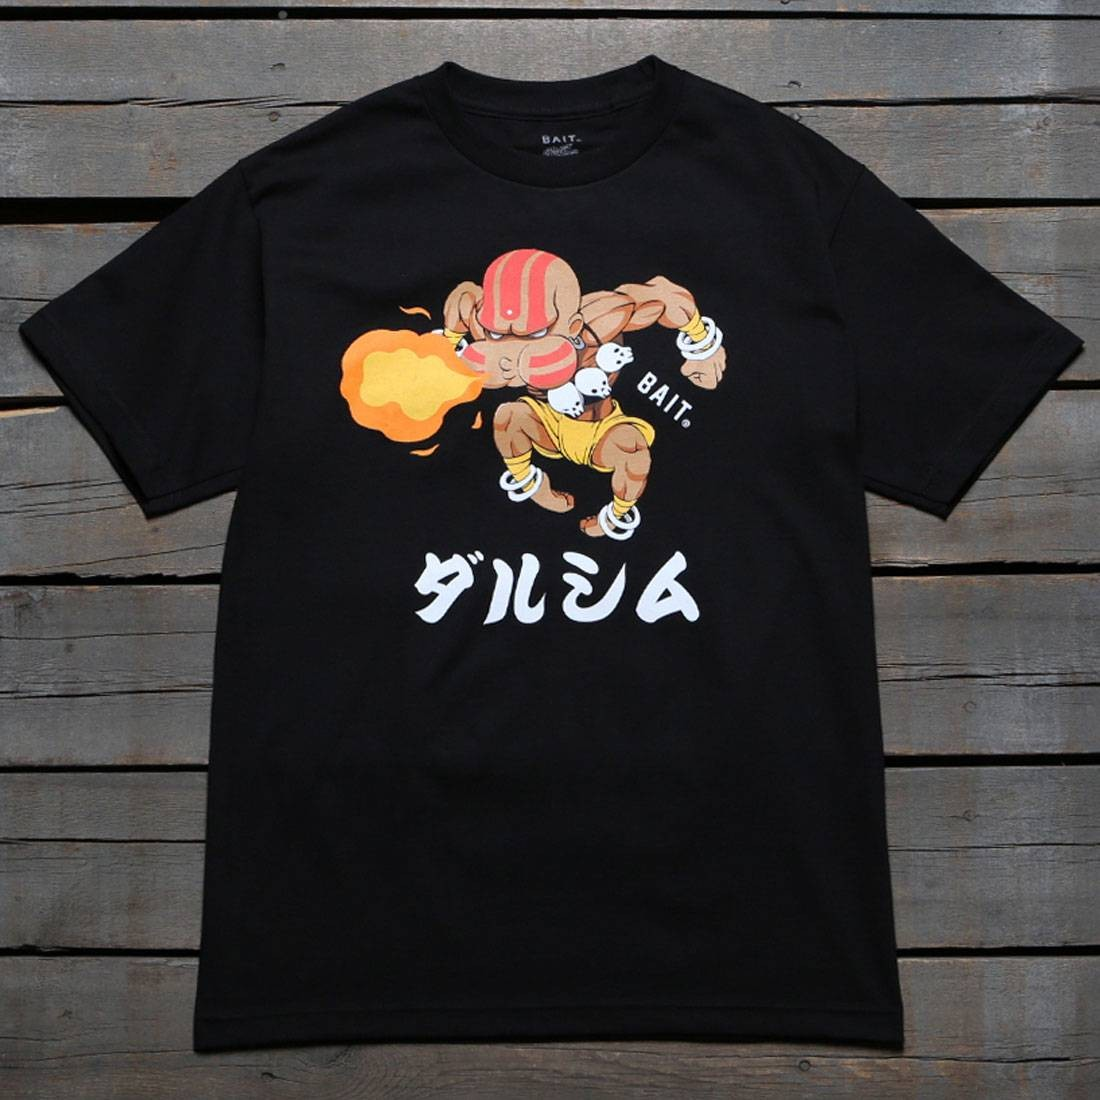 BAIT x Street Fighter Men Chibi Dhalsim Tee (black)